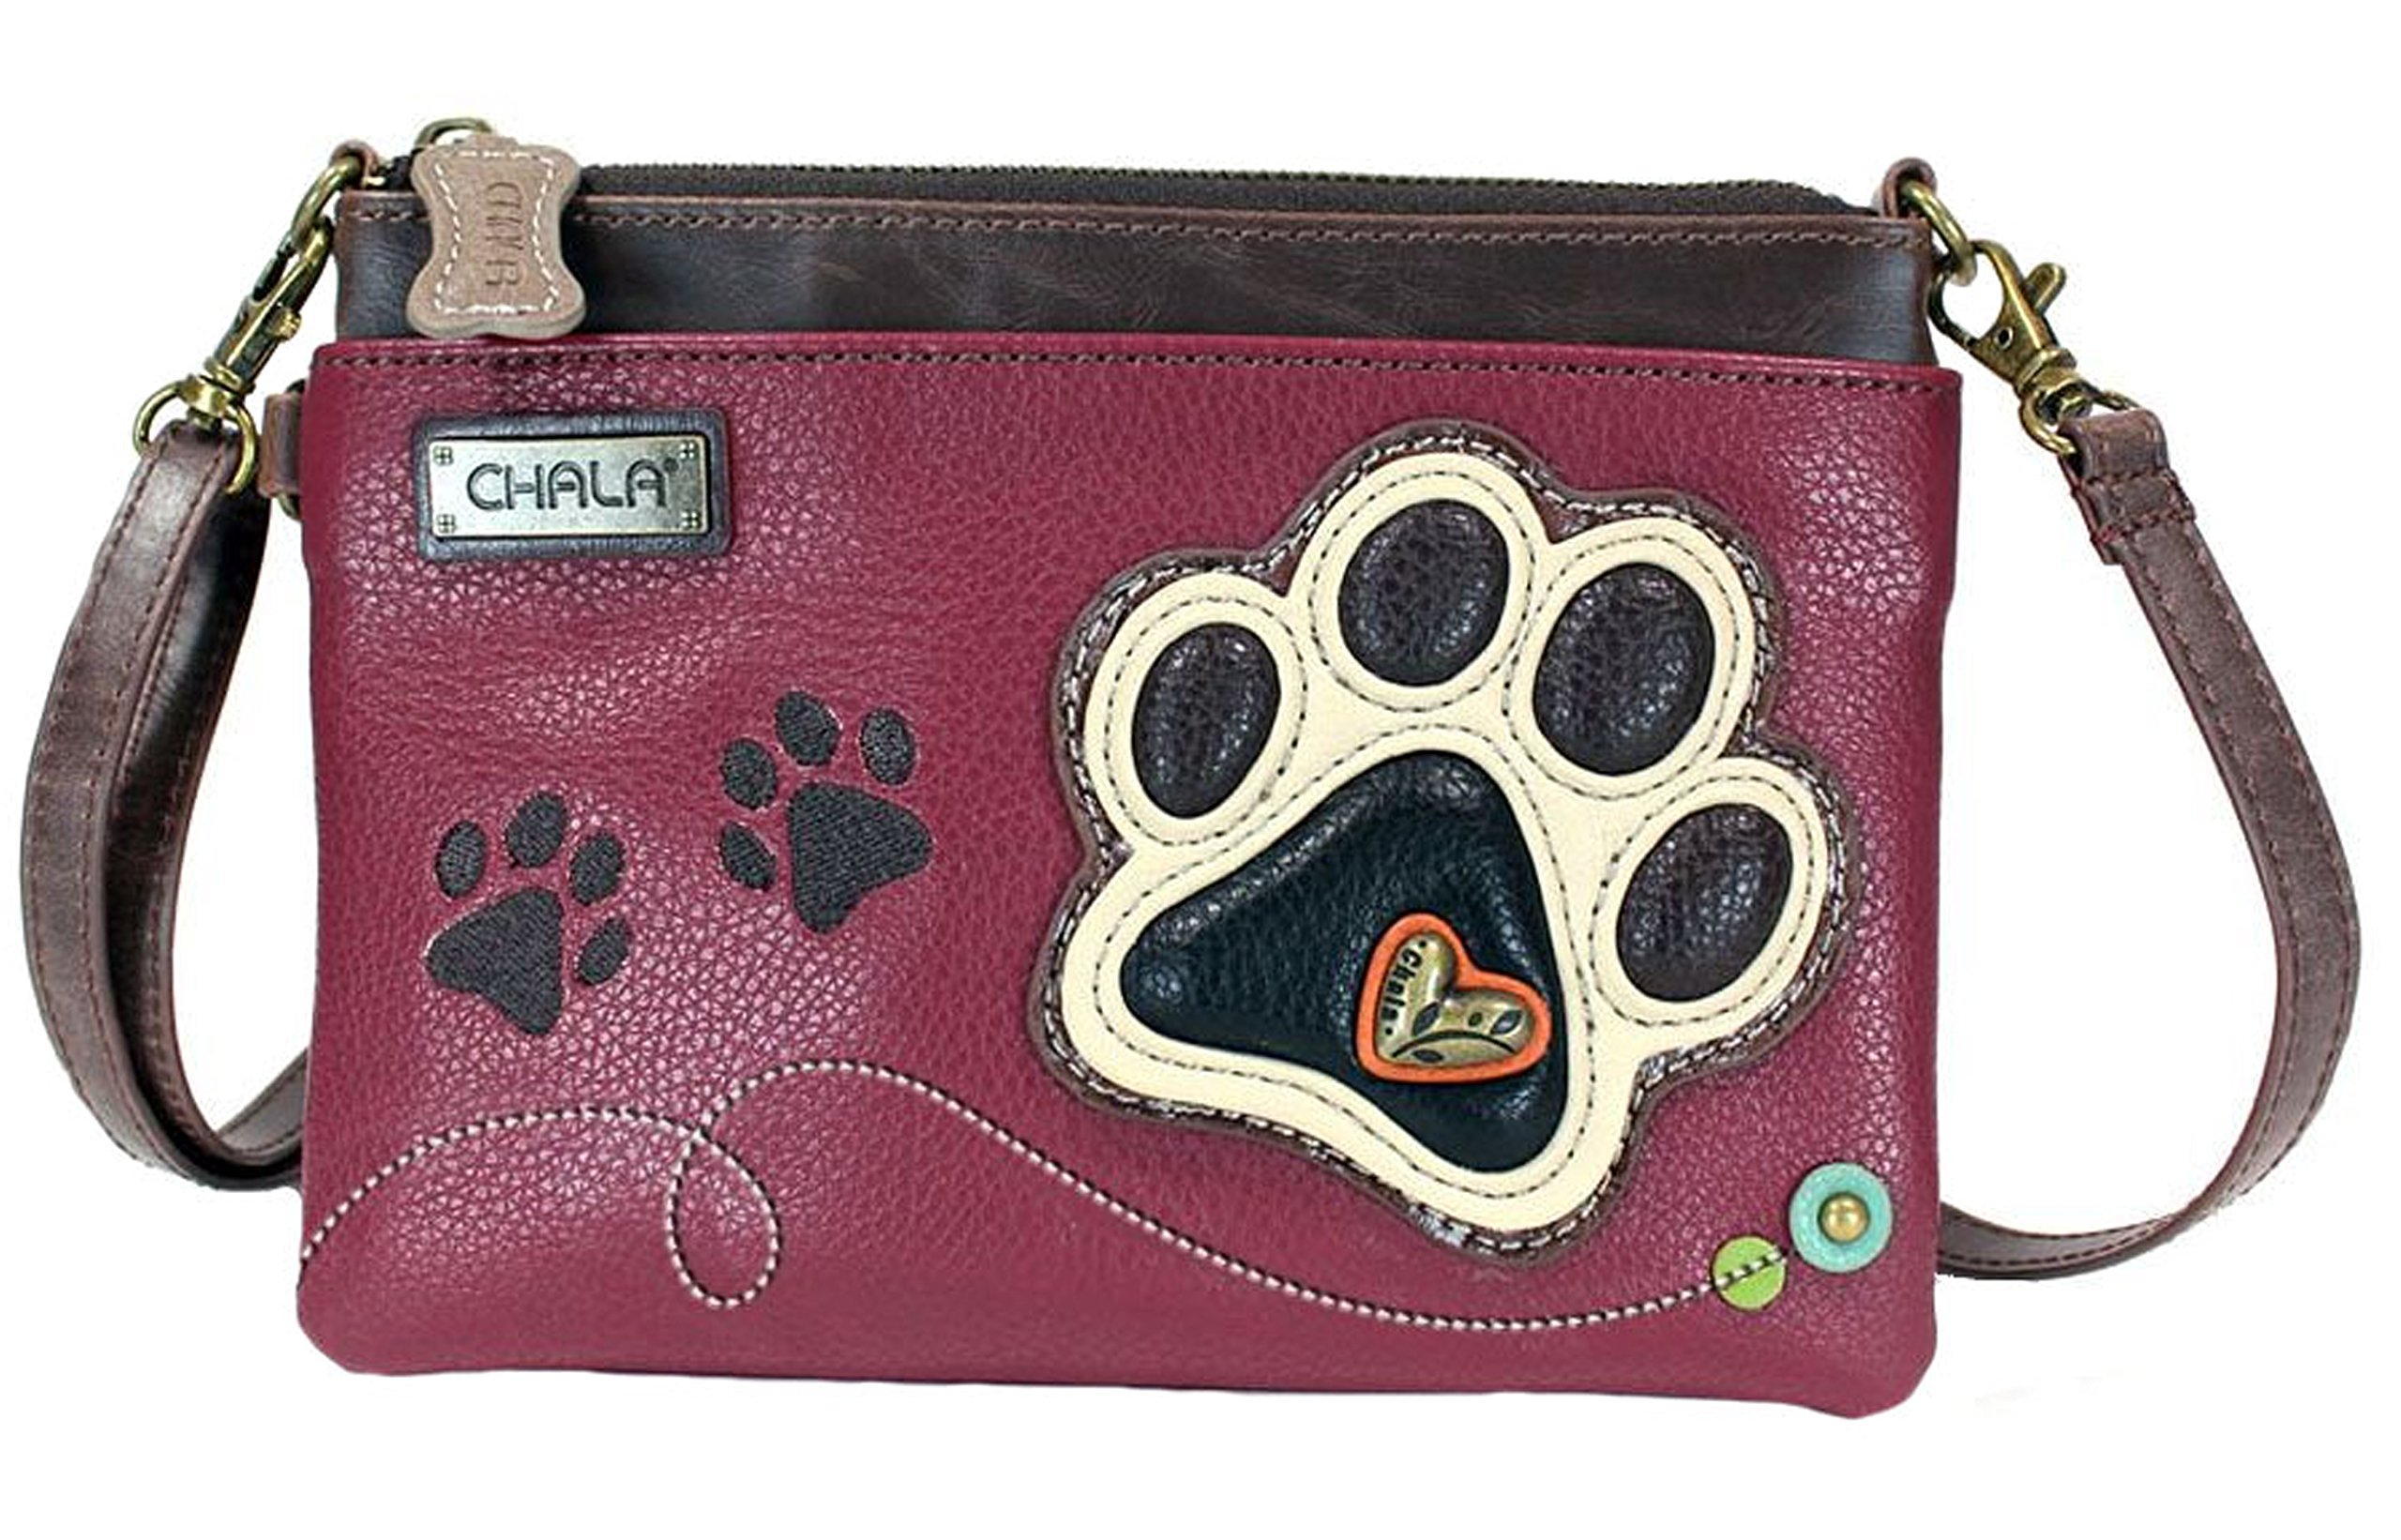 Chala Paw Print Mini Crossbody Handbag Dog Lovers Convertible Straps (Maroon / Ivory)